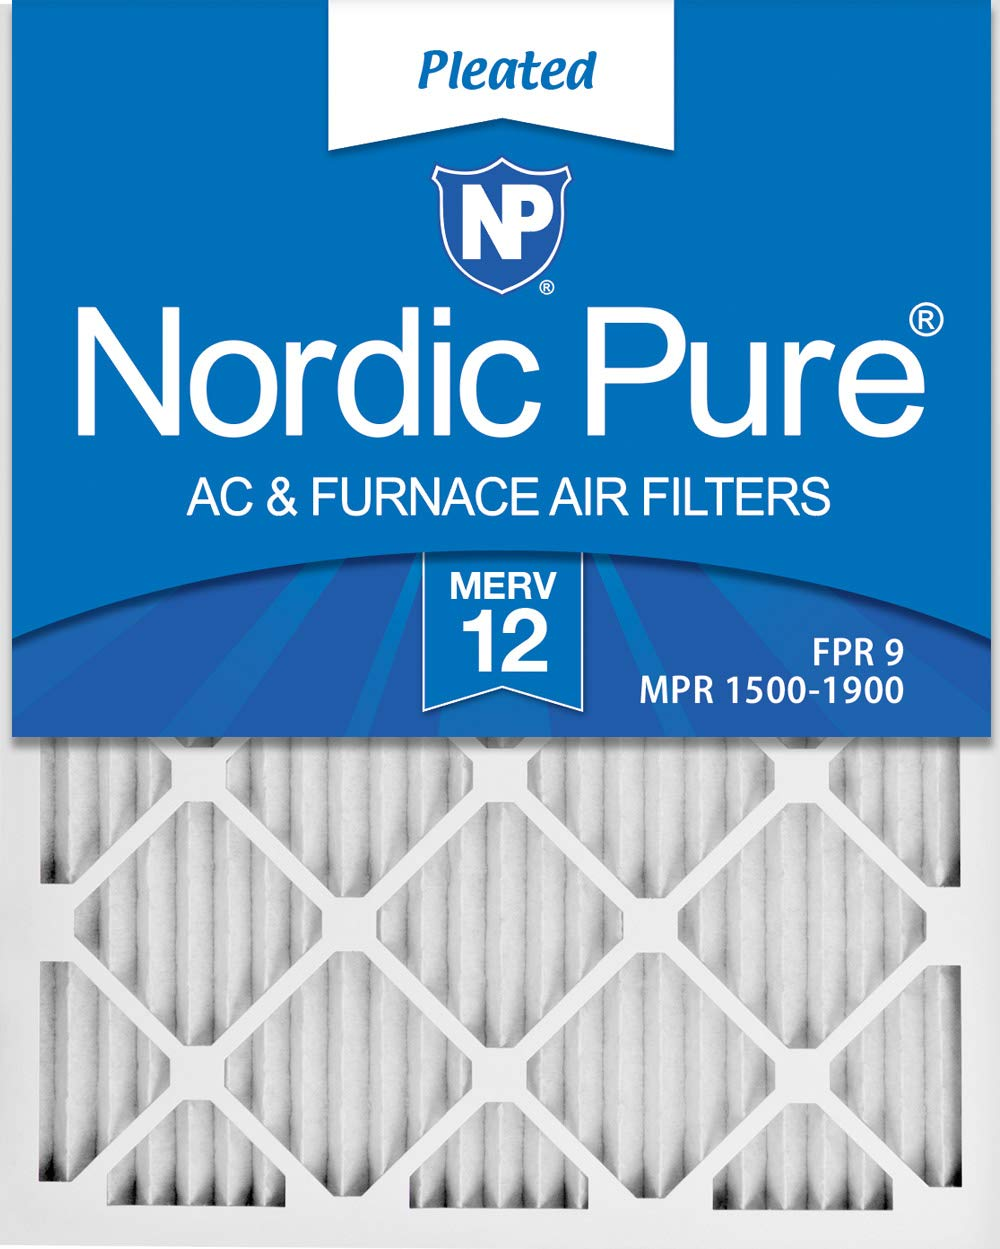 Nordic Pure 20x22x1 Exact MERV 12 Pleated AC Furnace Air Filters 2 Pack